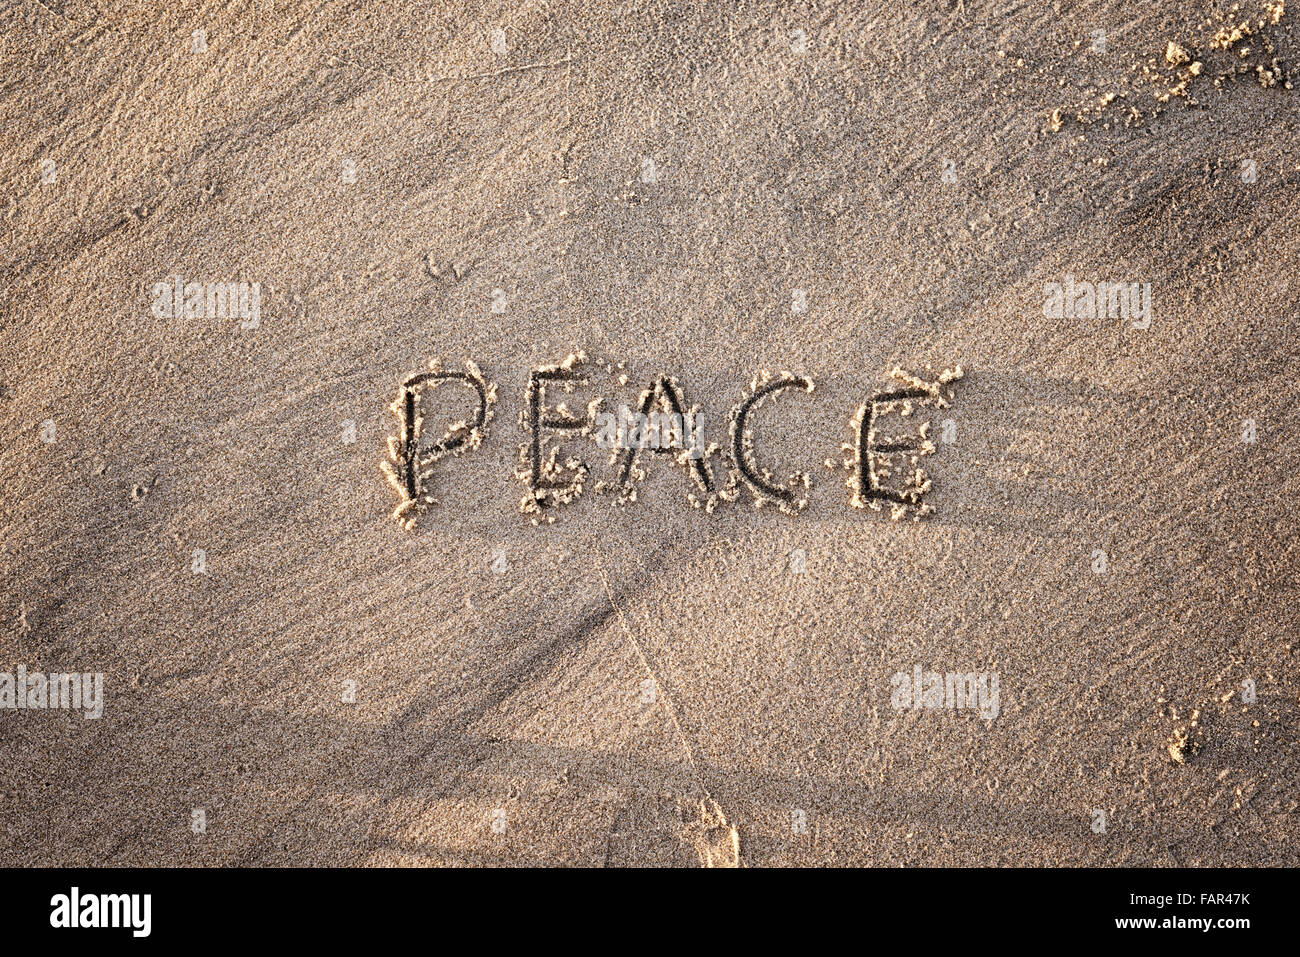 The word peace written in sand. - Stock Image